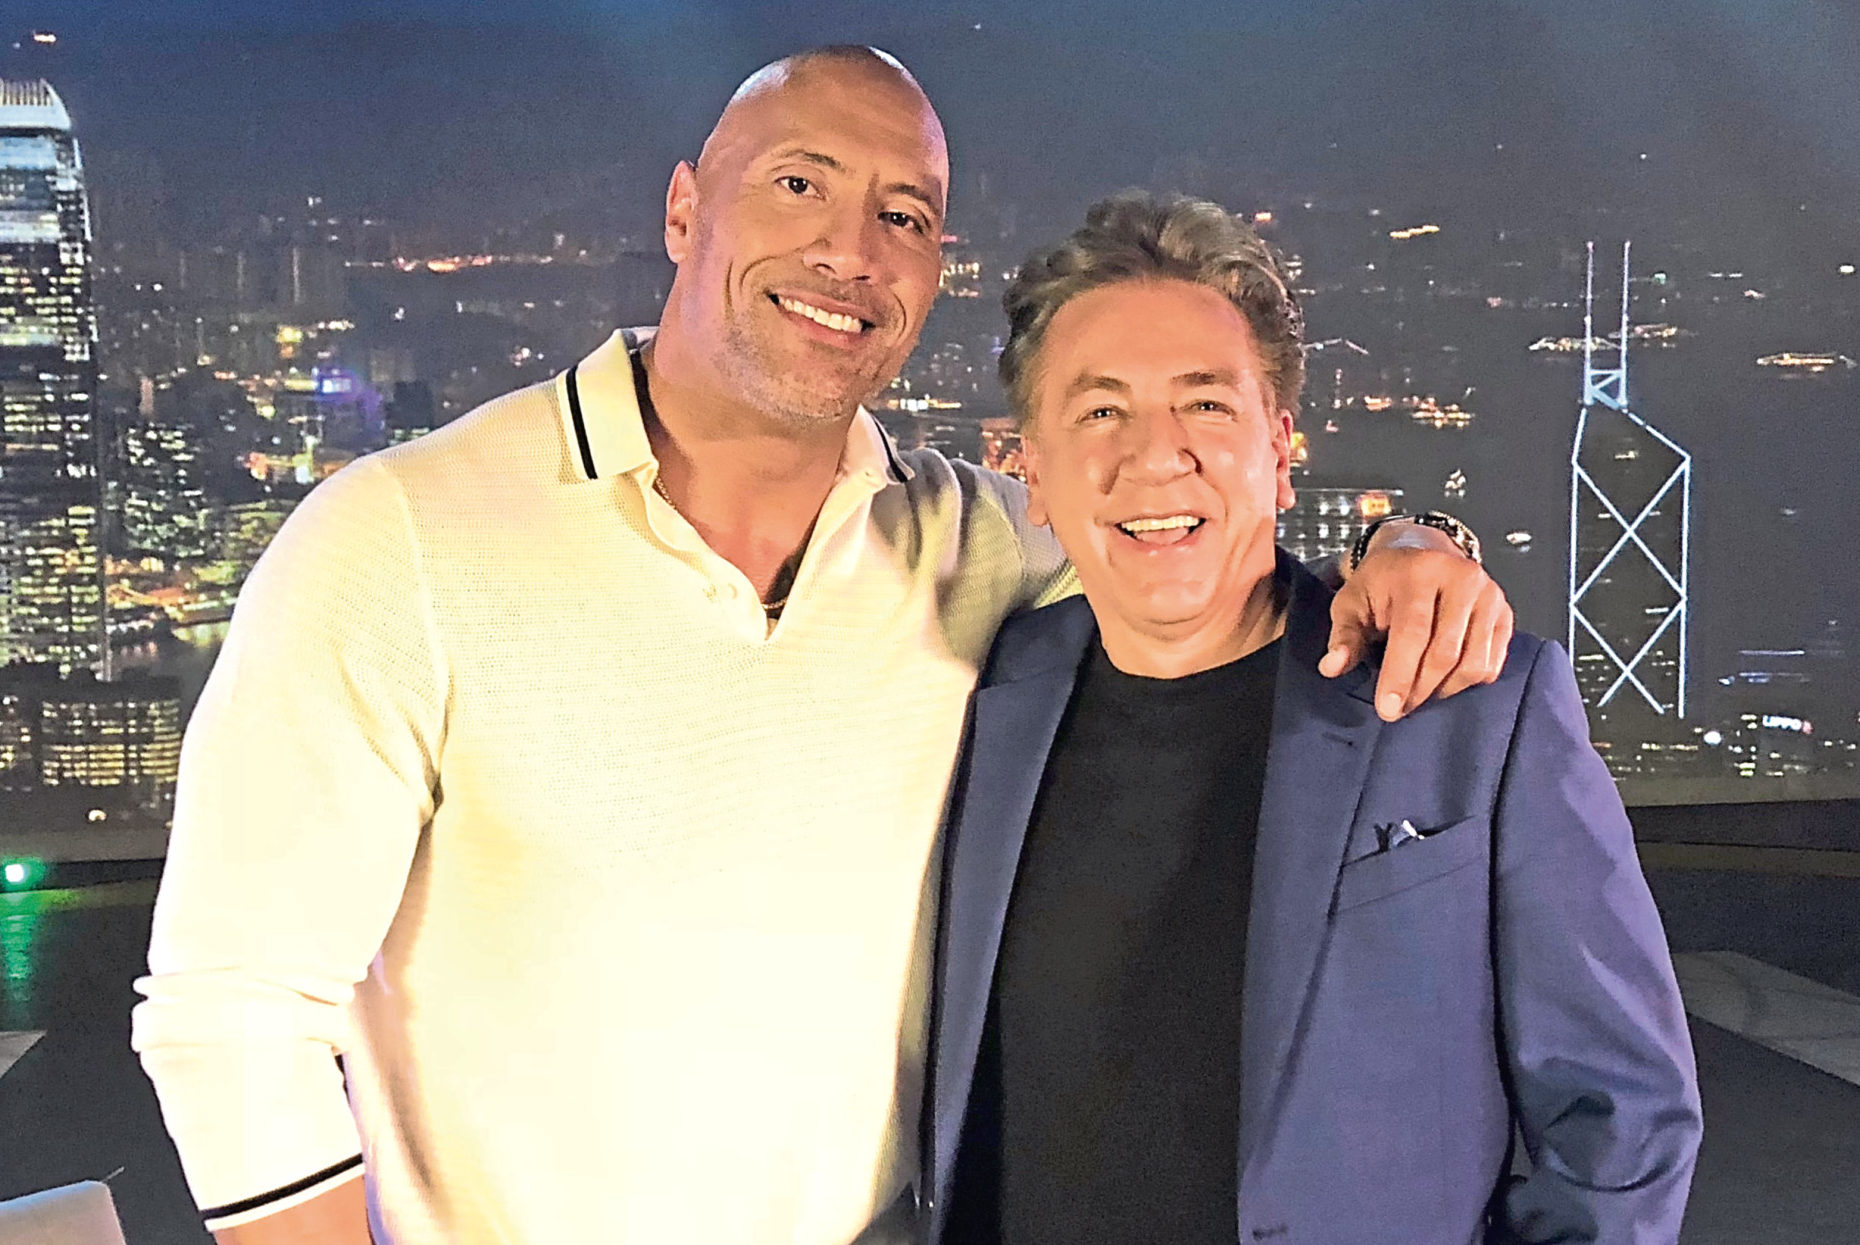 On a roll with The Rock: Dwayne and Ross